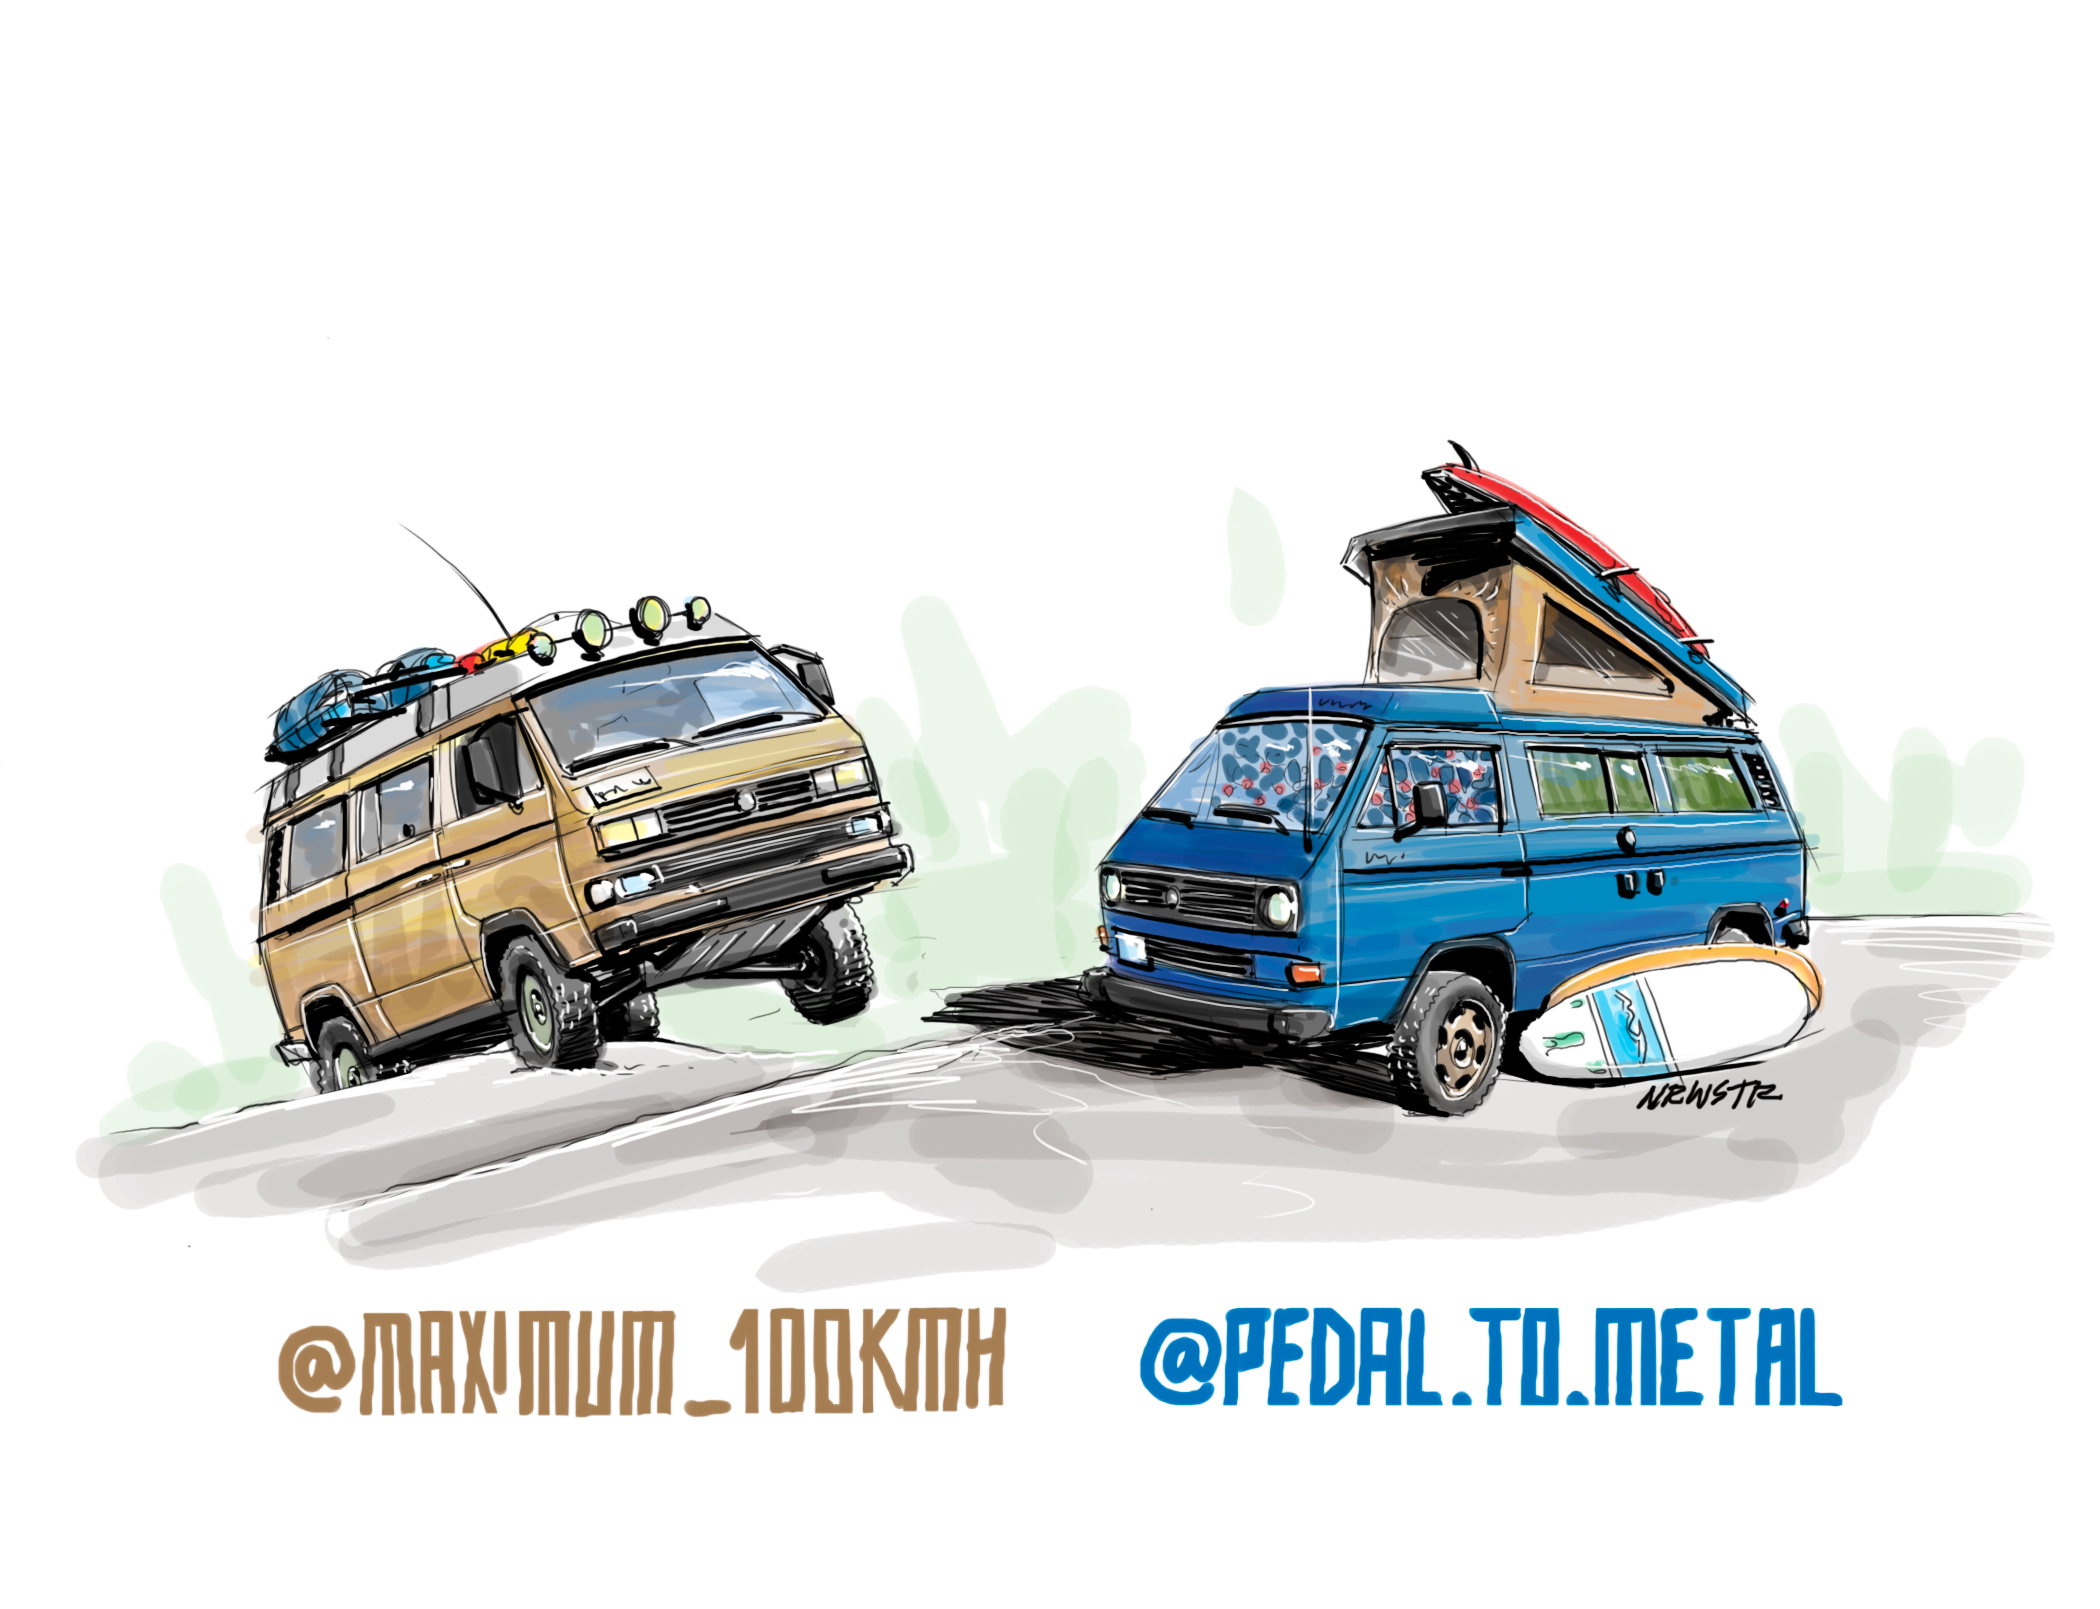 @maximum_100kmh-@pedal.to.metal-sketch.jpg